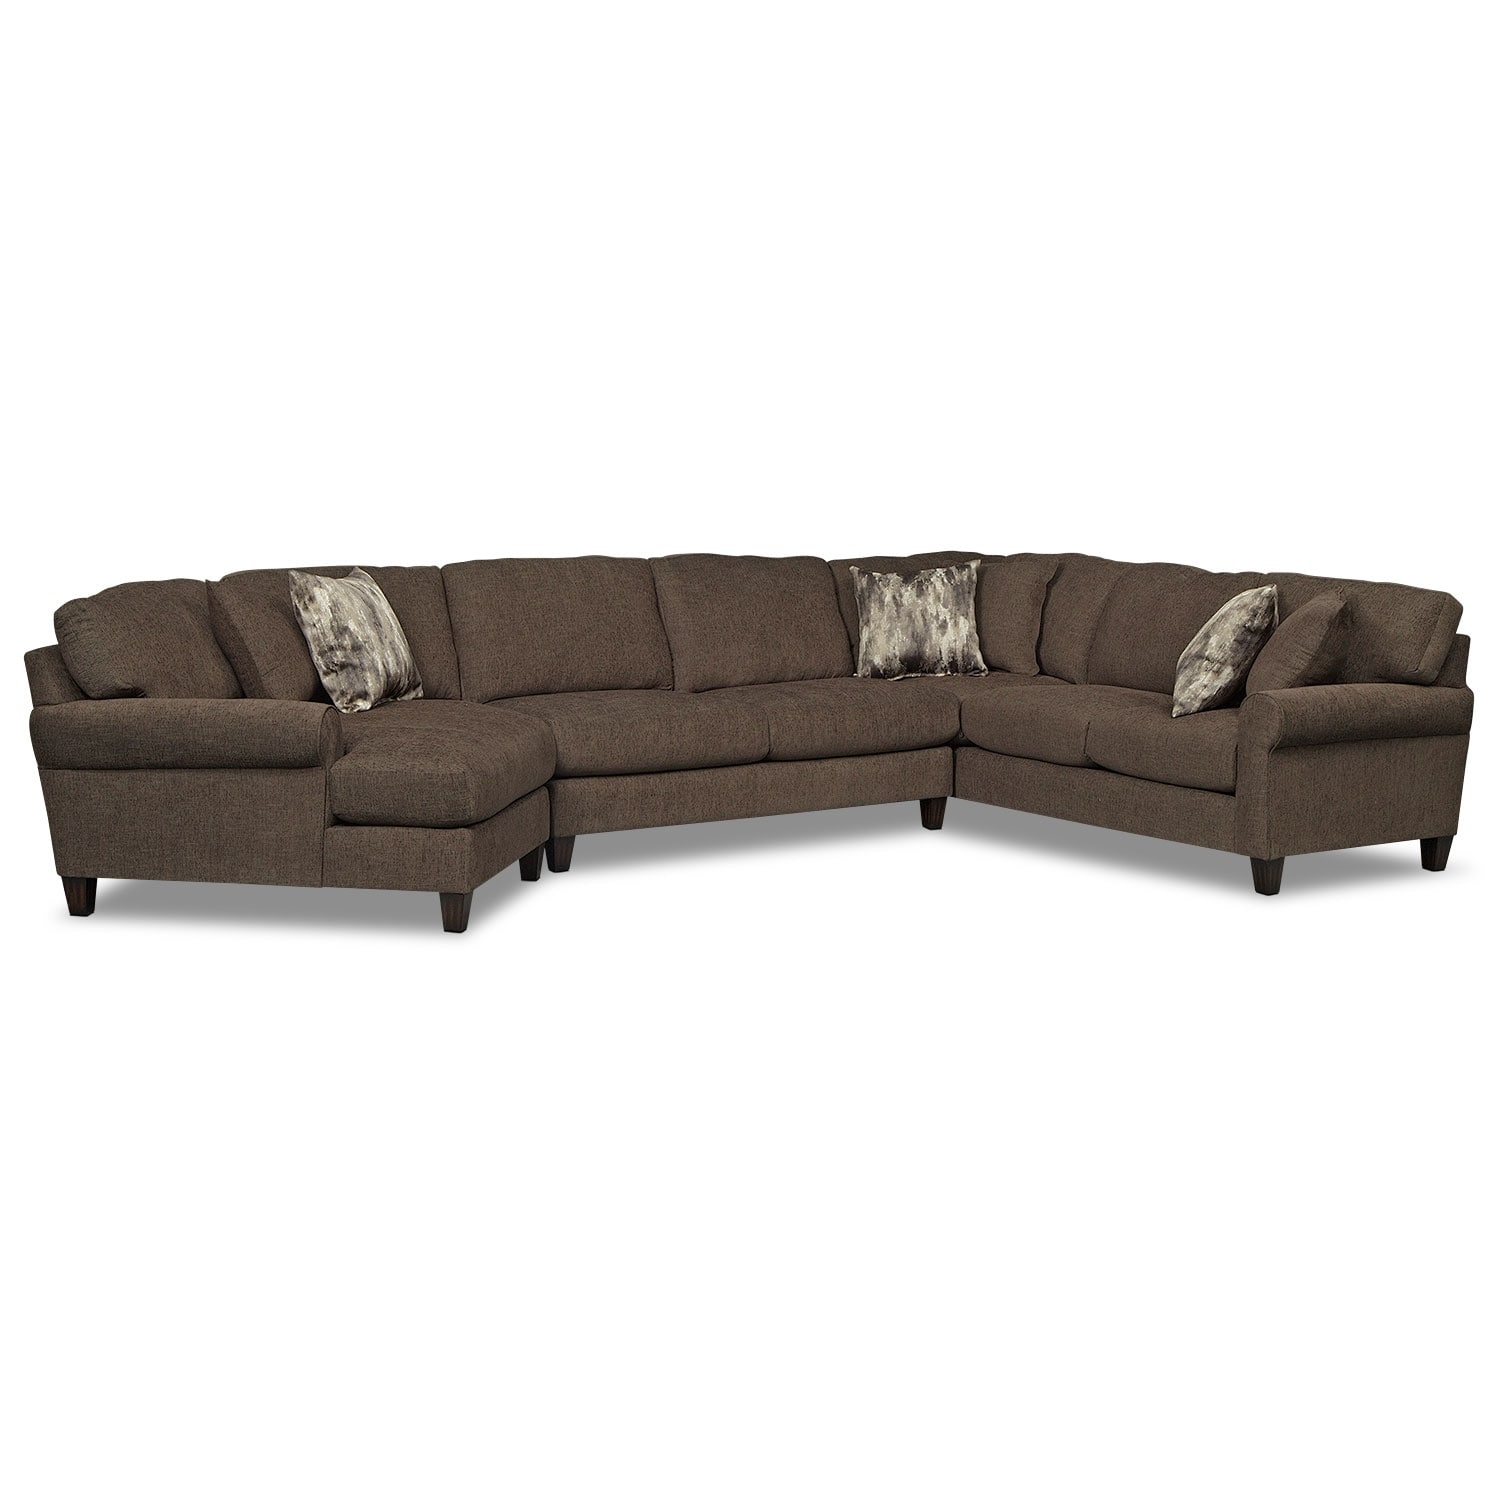 Sectional sofas american signature american signature for Affordable furniture 3 piece sectional in wyoming saddle